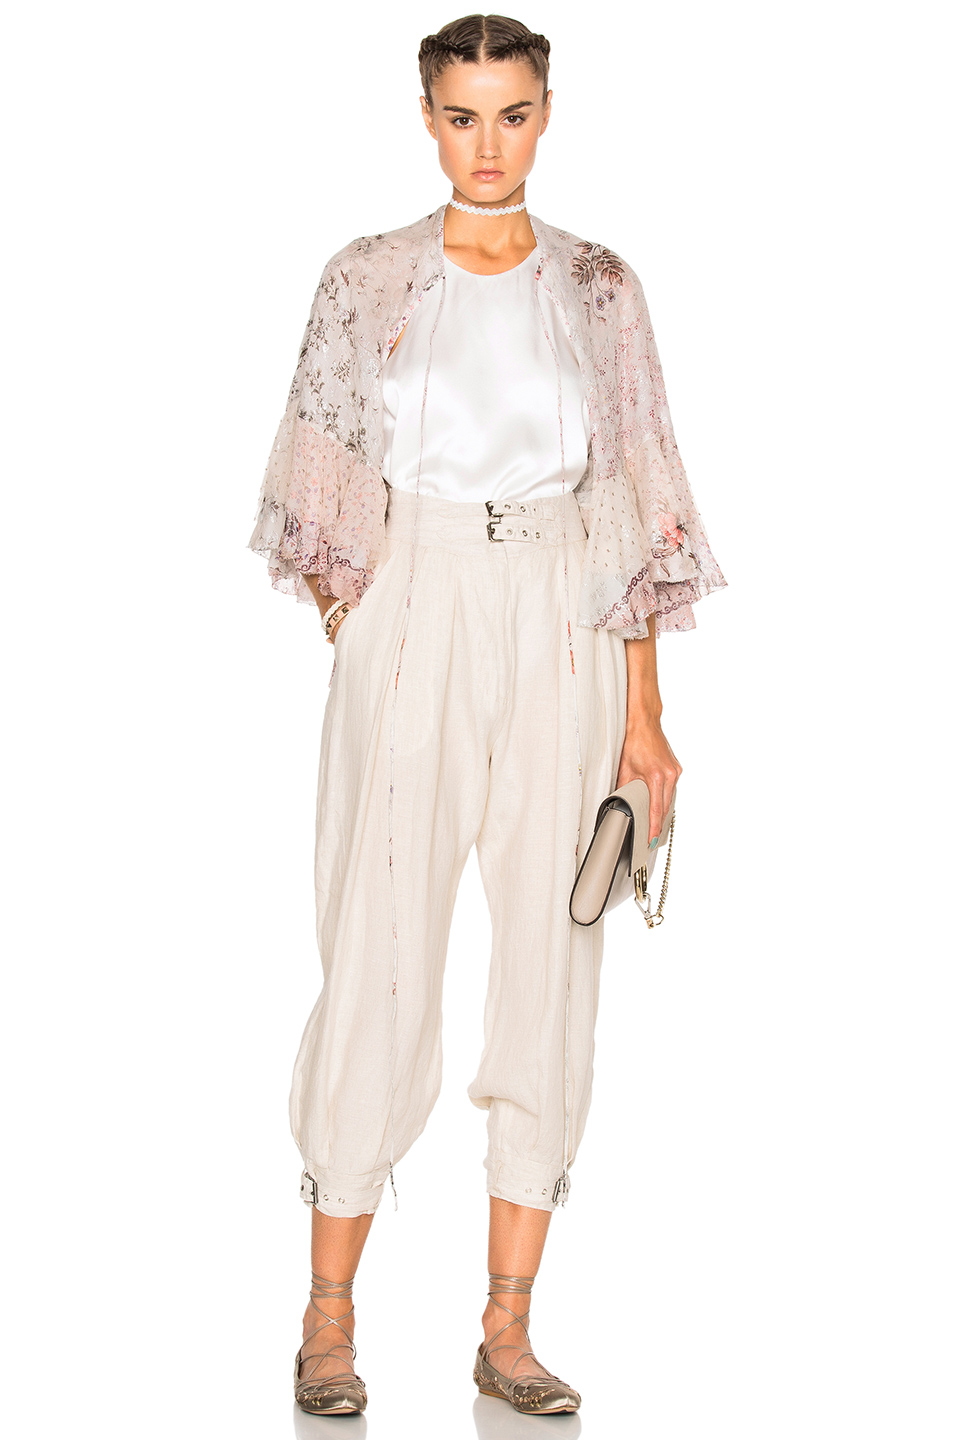 Etro Margot Cape in Neutrals,Floral